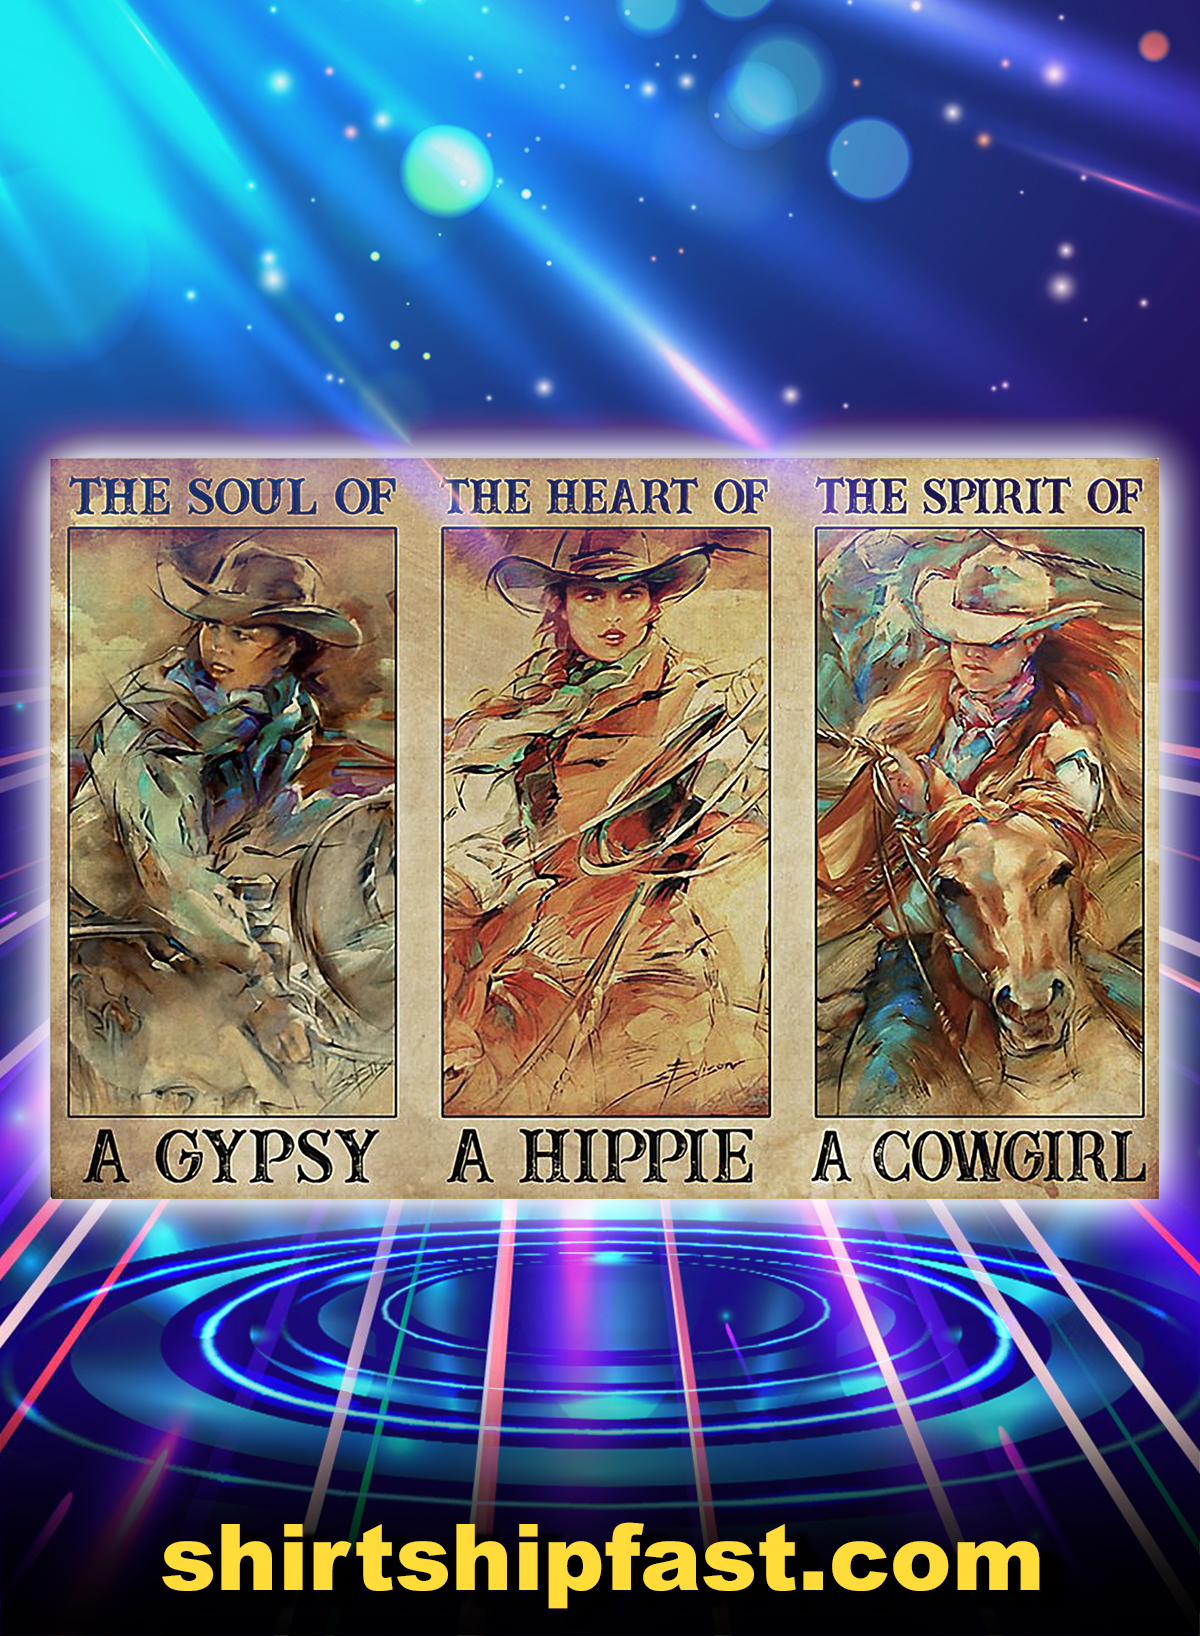 Spirit of a cowgirl the soul of a gypsy poster - A4